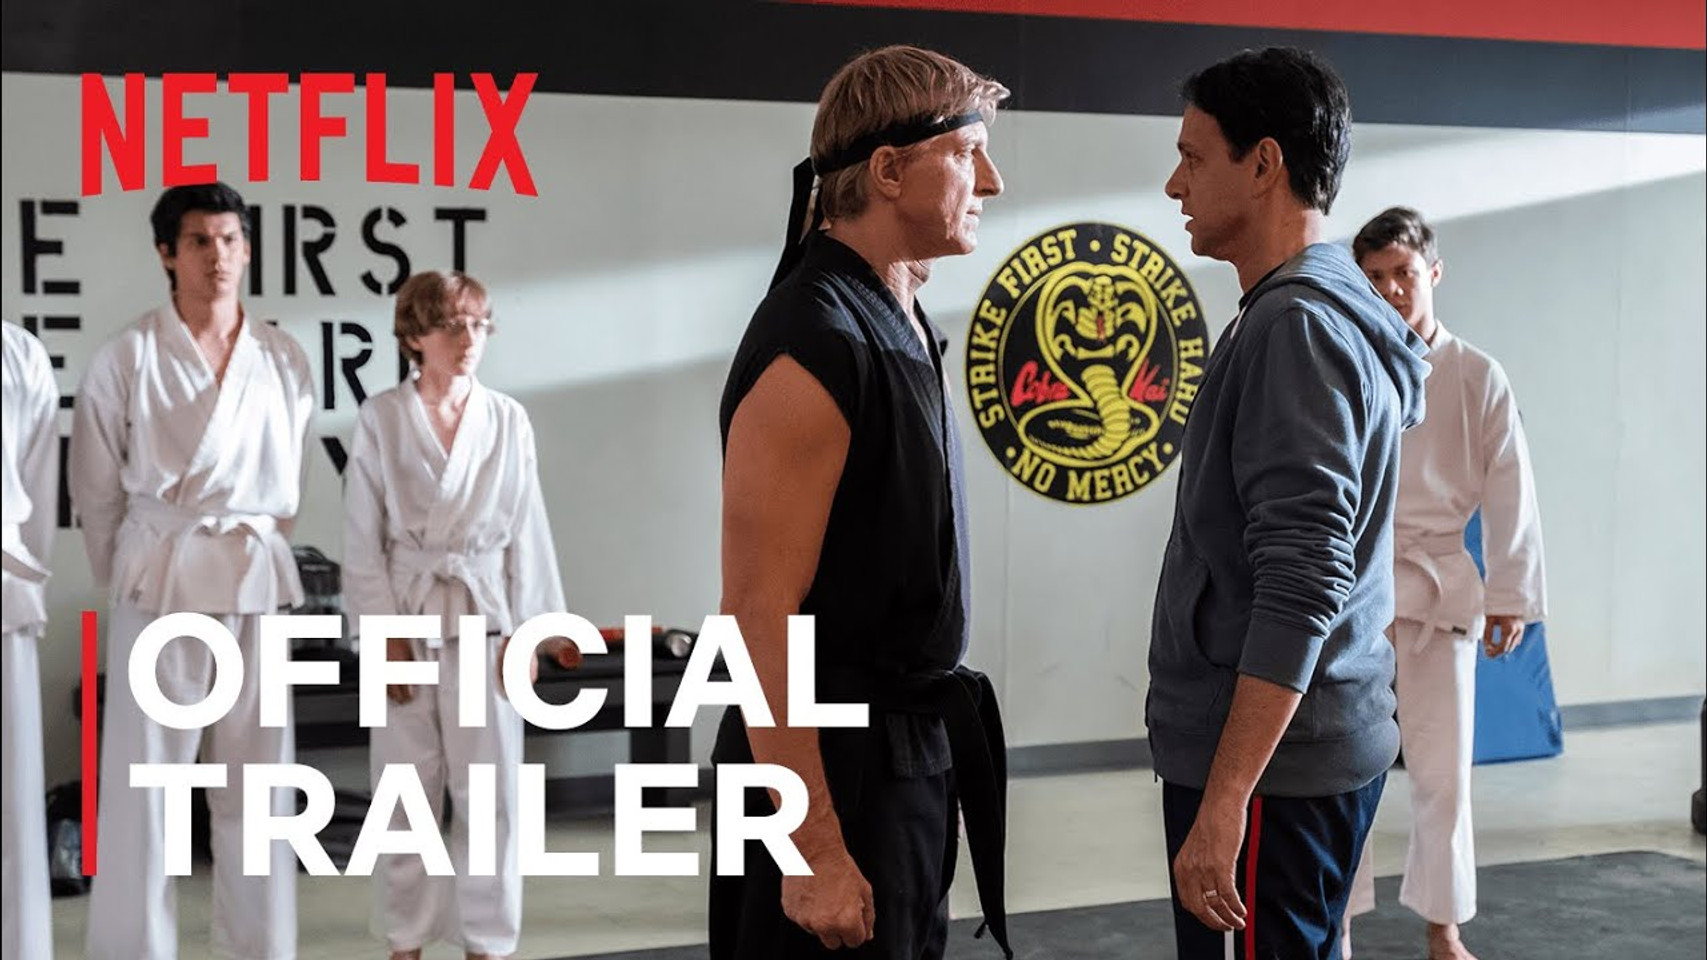 COBRA KAI | The Karate Kid Legacy Continues